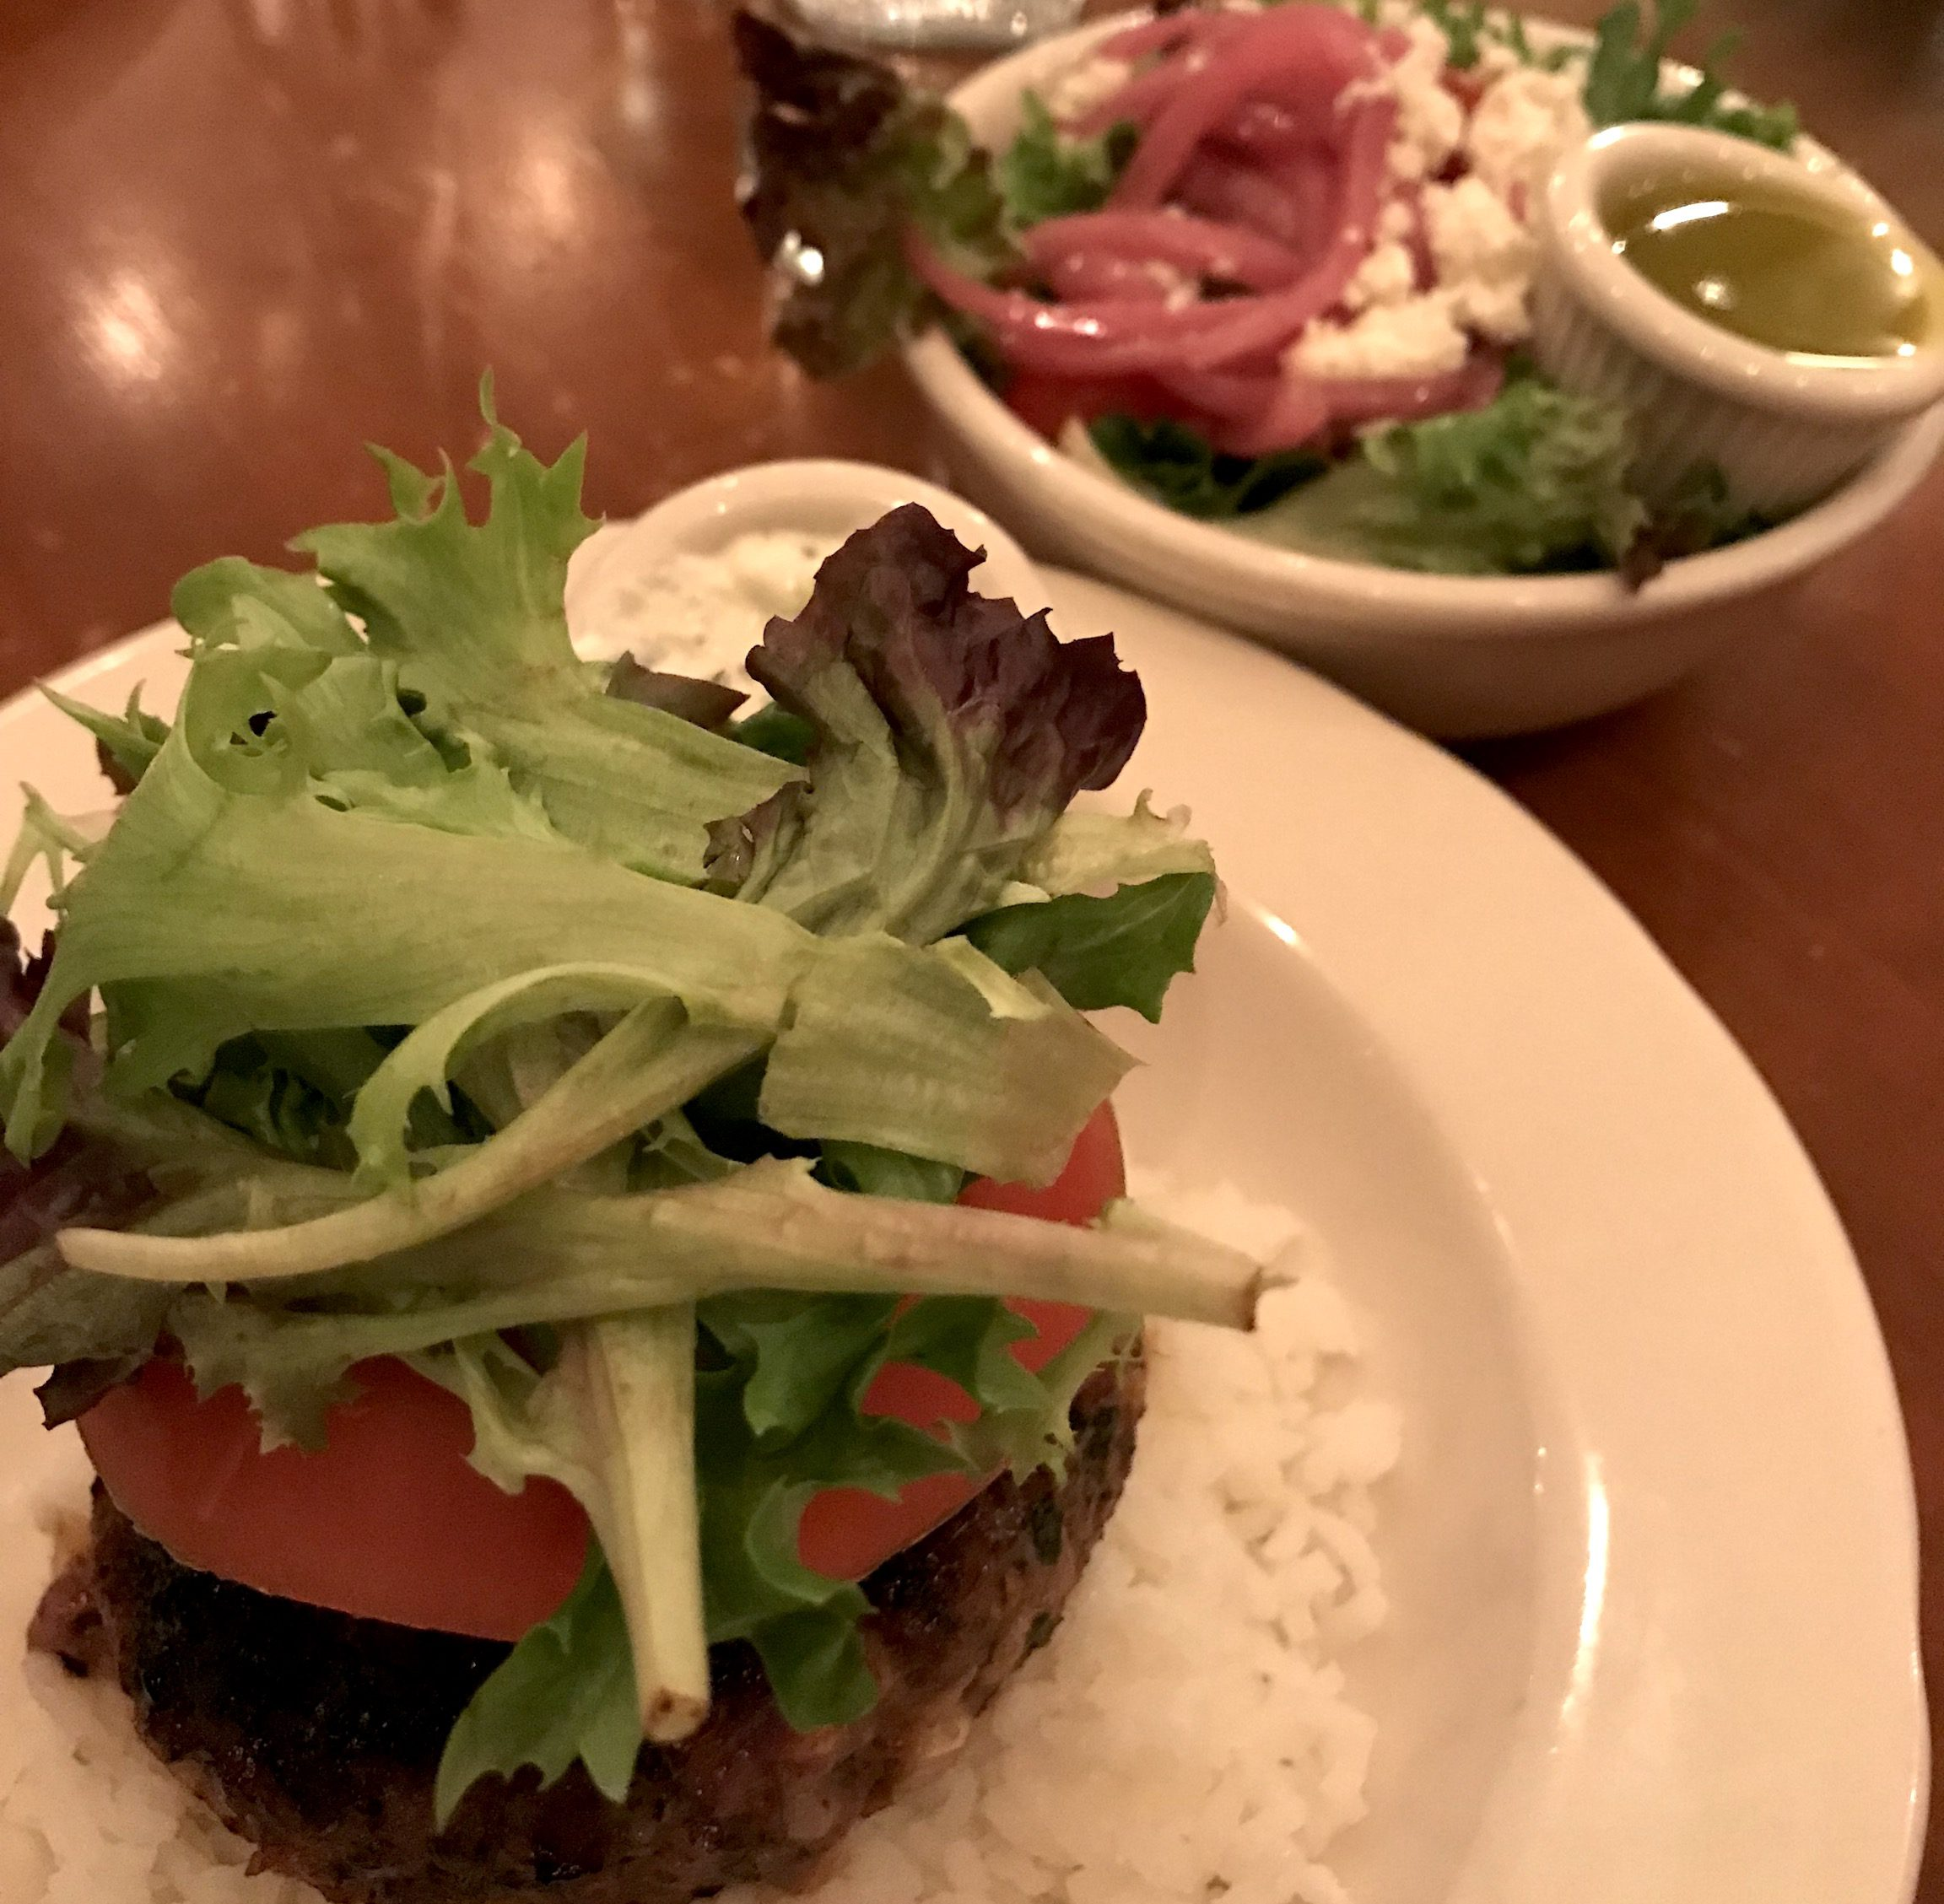 Martha's Vineyard Frugal Foodie Dining Out Deal Lamb Burger At Little House Cafe Wednesday 2 For 1 Night